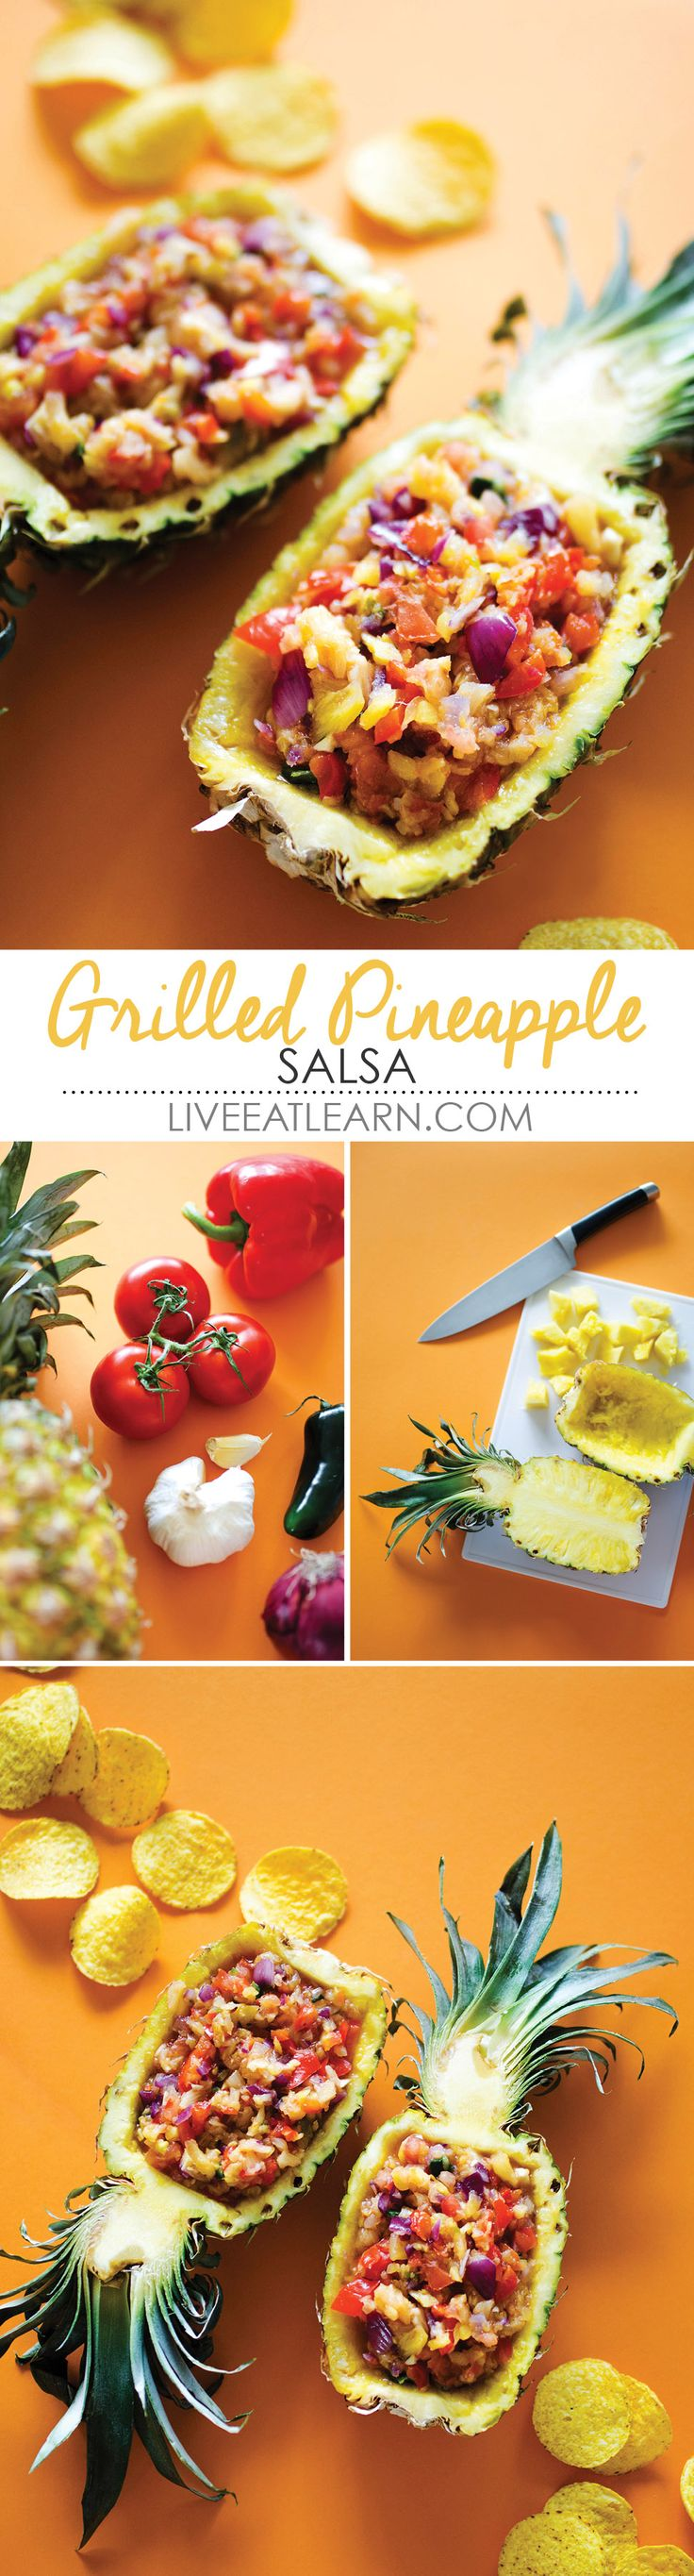 This healthy Grilled Pineapple Salsa recipe is sweet, spicy, savory, and comes together in minutes. Serve it as a sauce with chips for an appetizer or snack, as a salad topper, over barbeque or tacos, or really in any summer meal. Packed with flavor and fun, this is sure to be a family favorite. // Live Eat Learn